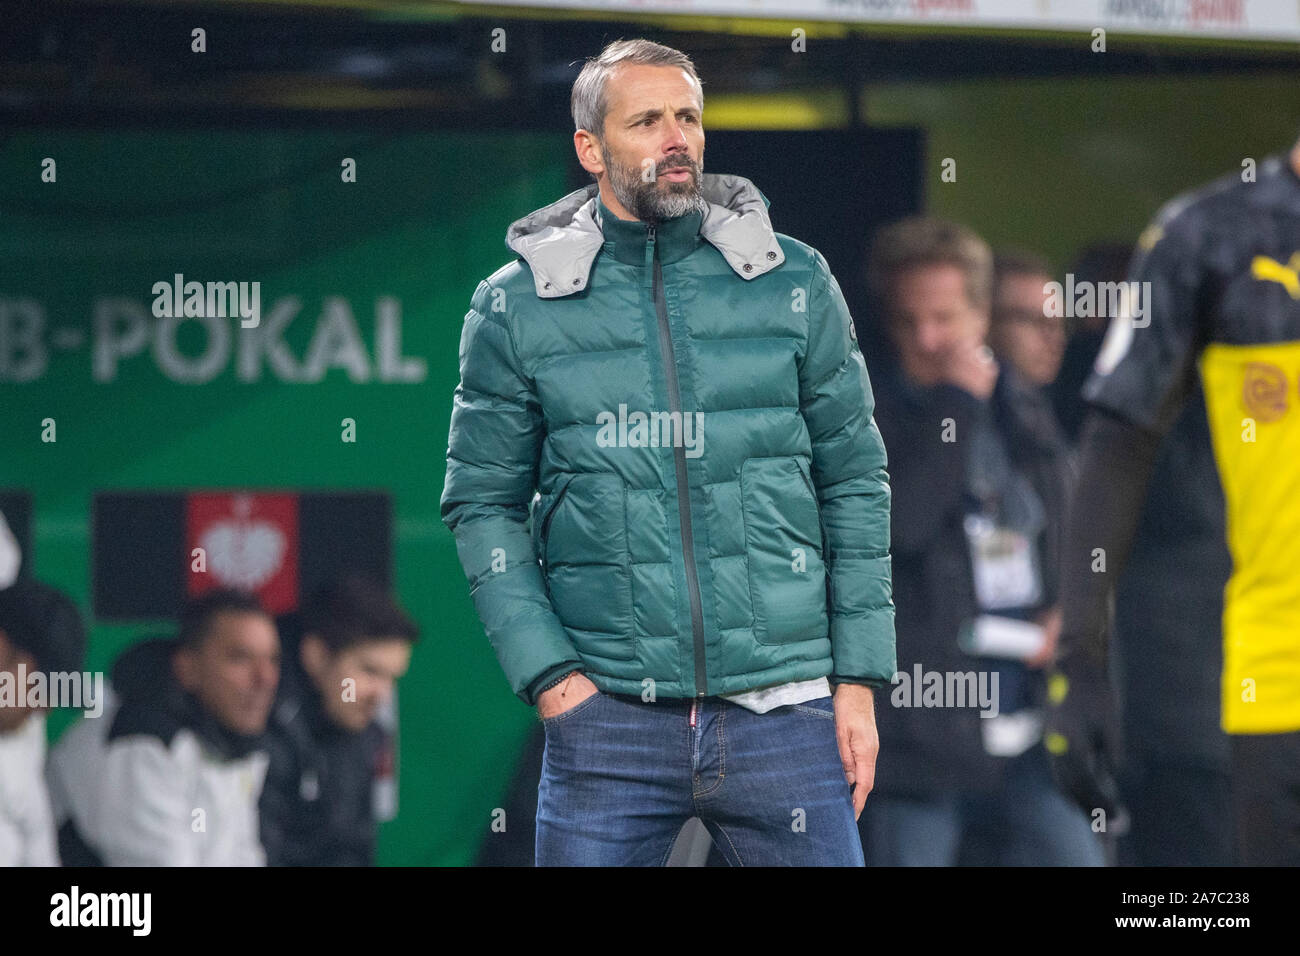 Coach Marco ROSE (MG) is on the sidelines and is frustrated, frustrated, late-busted, disappointed, disappointed, disappointed, disappointed, sad, half figure, half figure, football, DFB Pokal, 2nd round, Borussia Dortmund (DO) - Borussia Monchengladbach (MG) 2: 1, on 30.10.2019 in Dortmund/Germany. | Usage worldwide Stock Photo